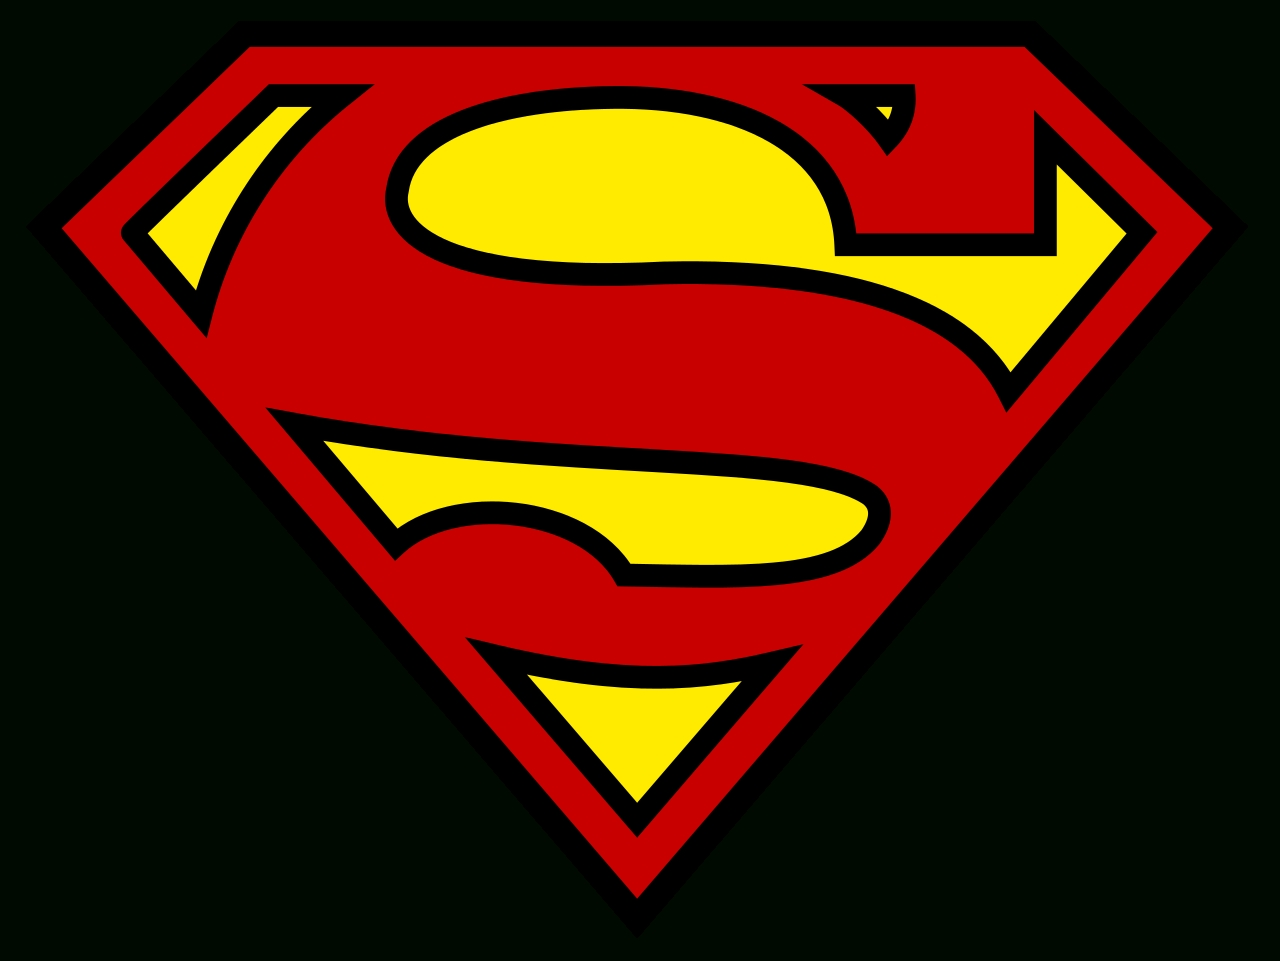 superman logo - wikipedia